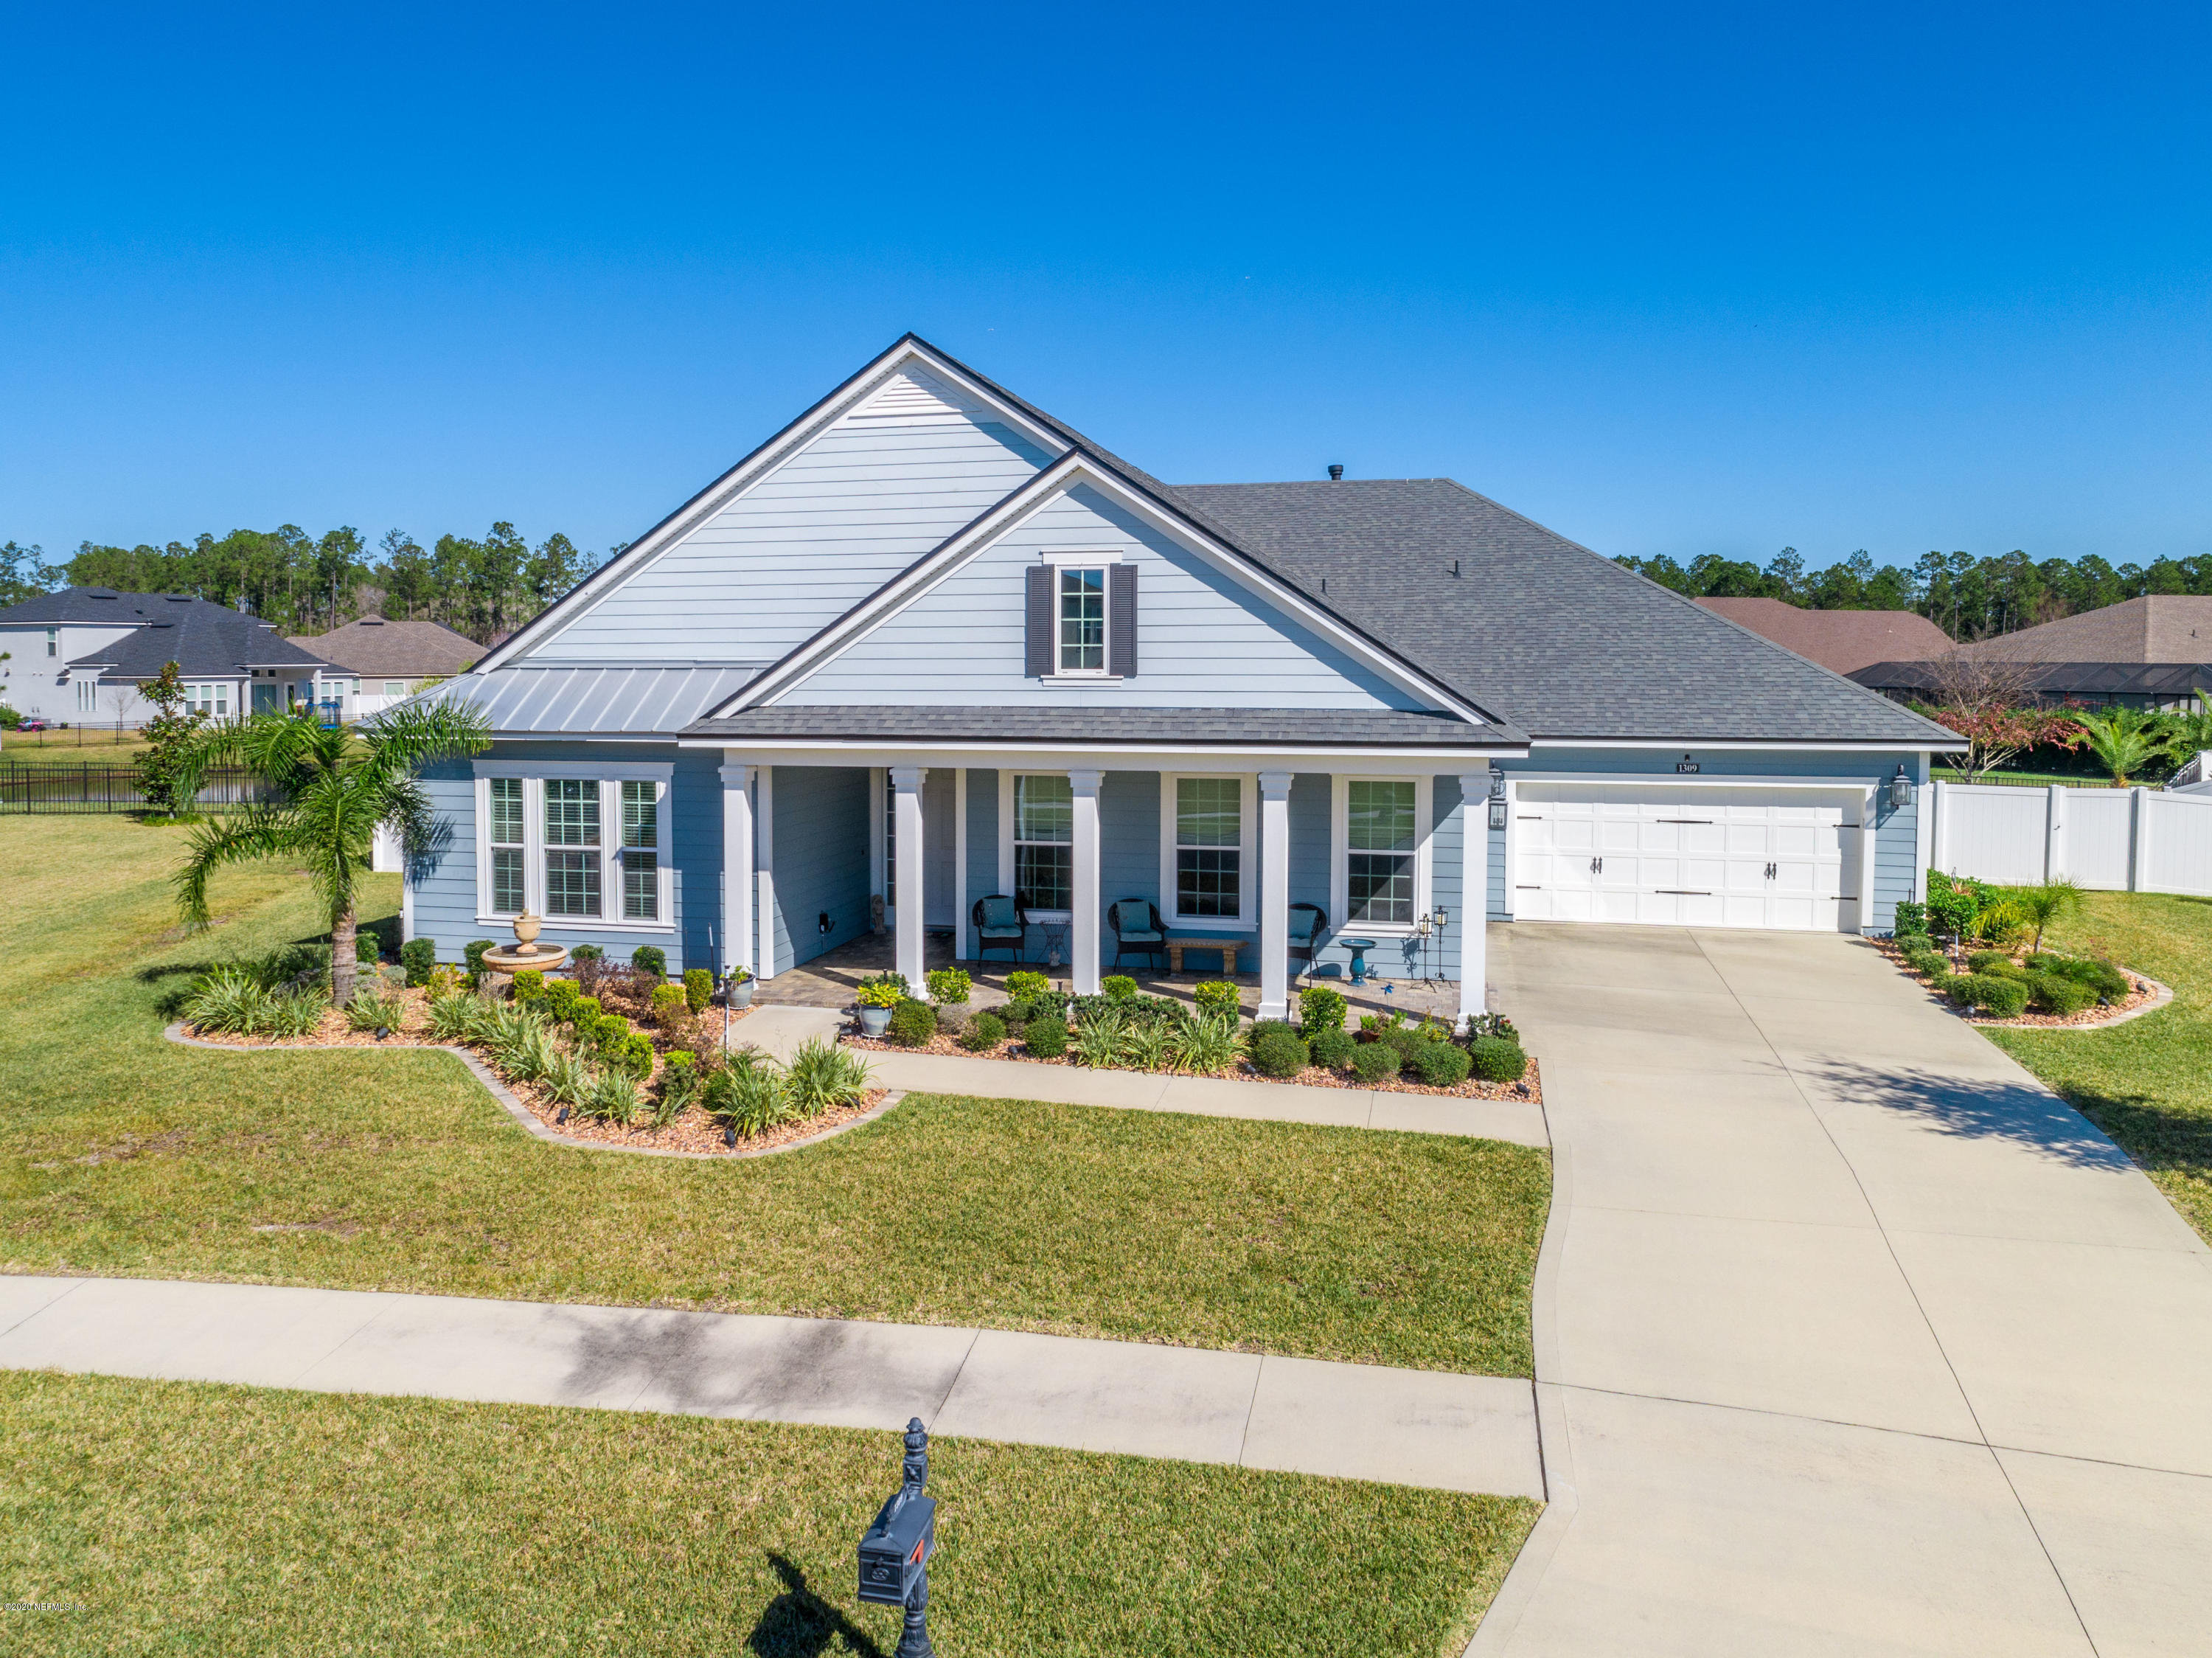 1309 WARBLER, MIDDLEBURG, FLORIDA 32068, 5 Bedrooms Bedrooms, ,3 BathroomsBathrooms,Residential,For sale,WARBLER,1035828